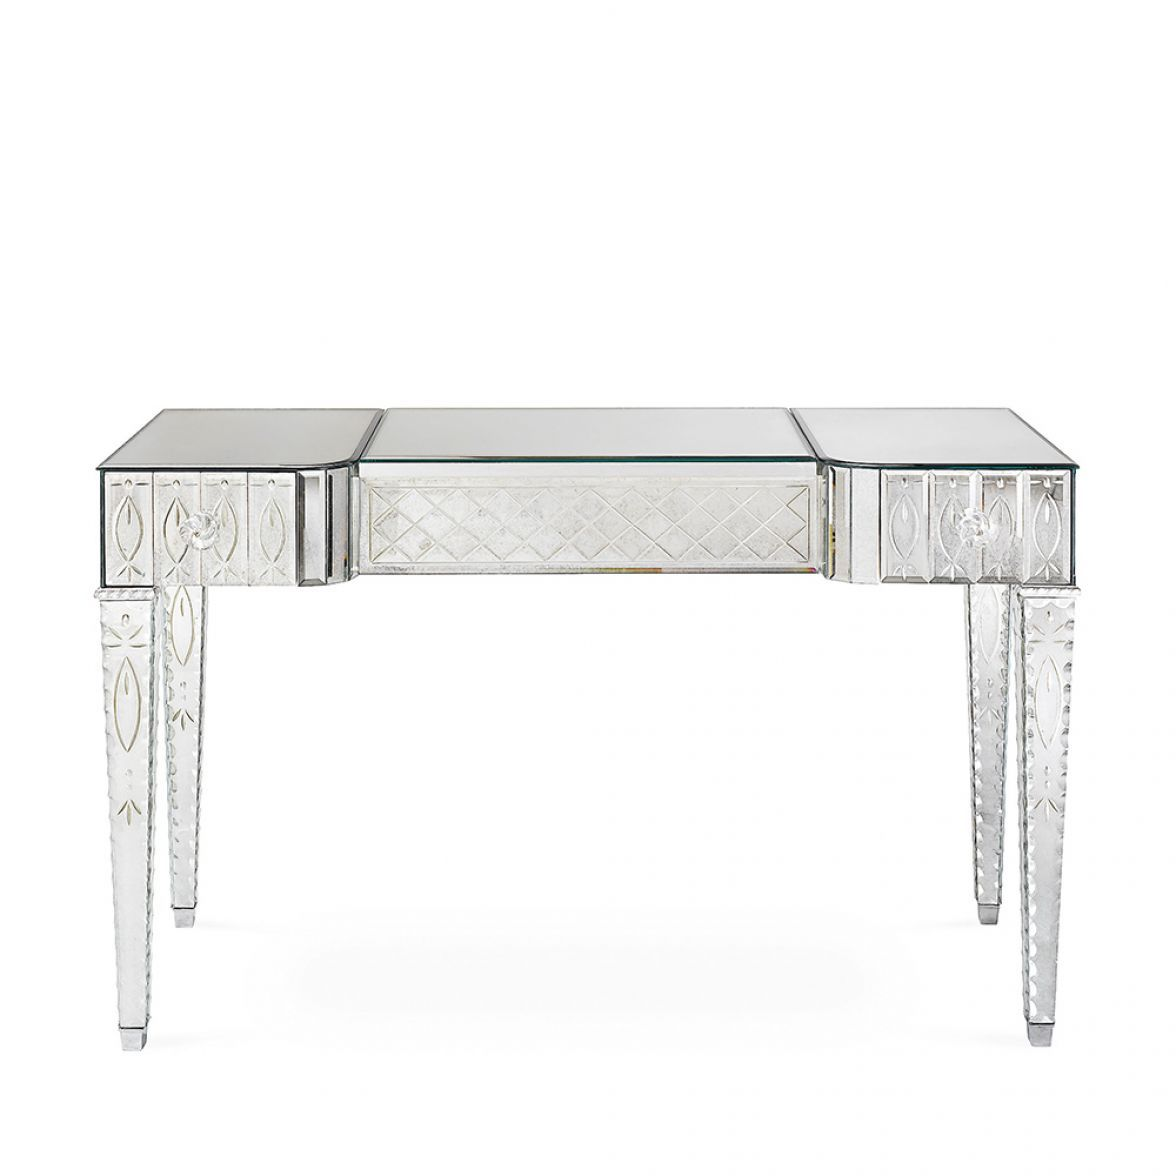 Saint Germain Dressing table  фото цена